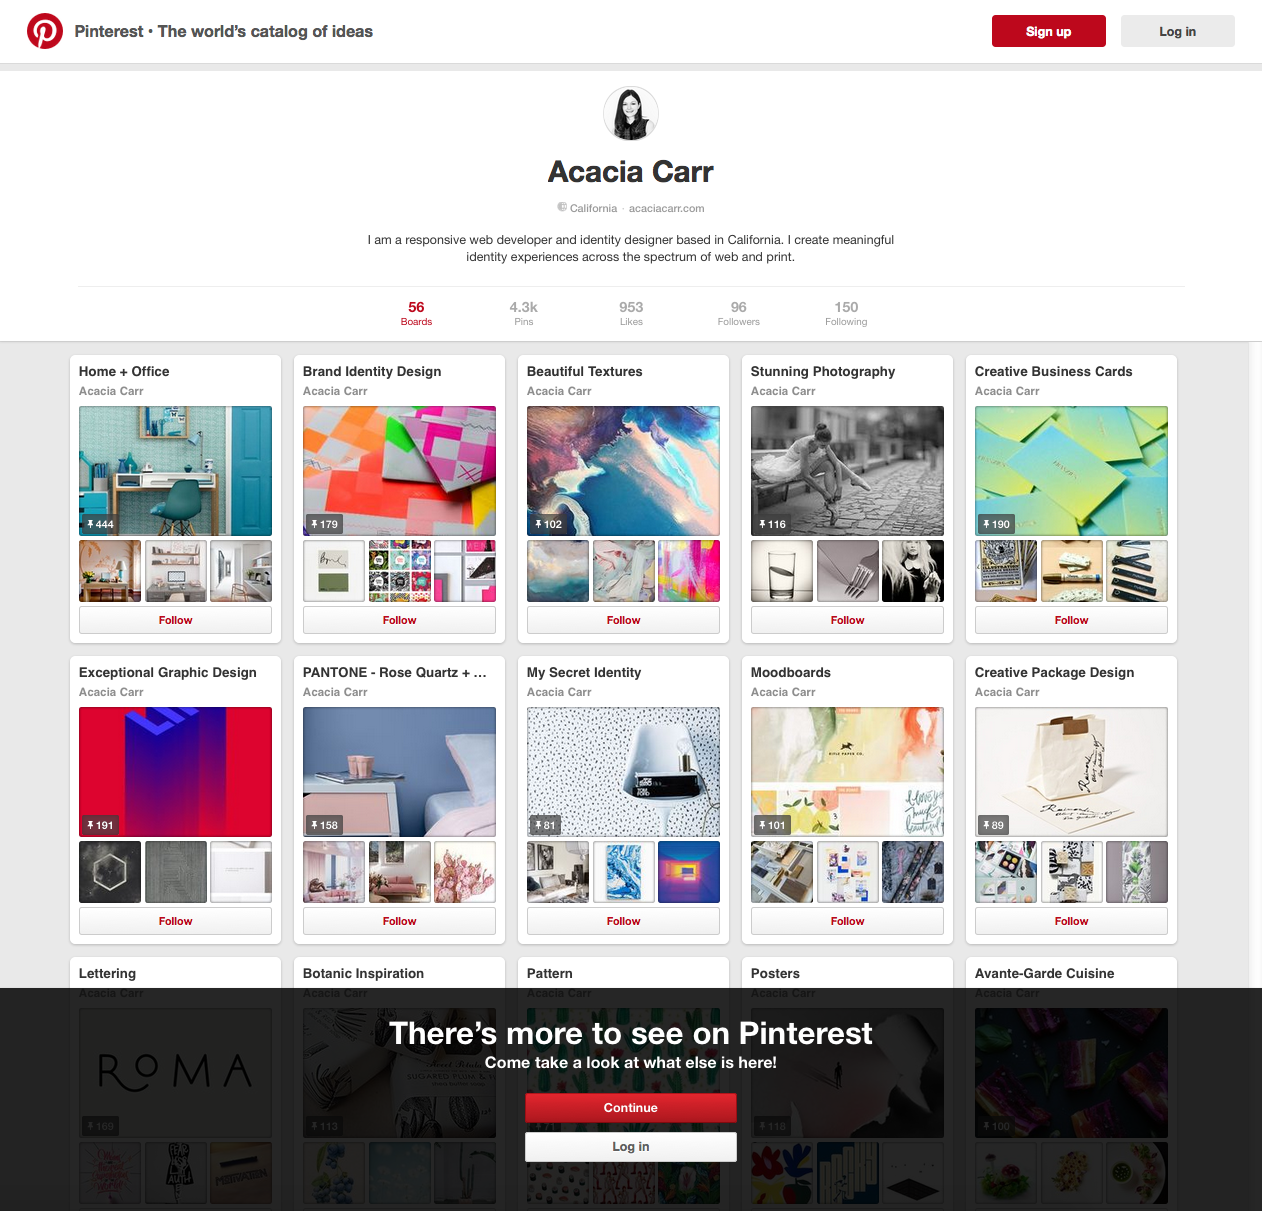 carr.pinterest.boards